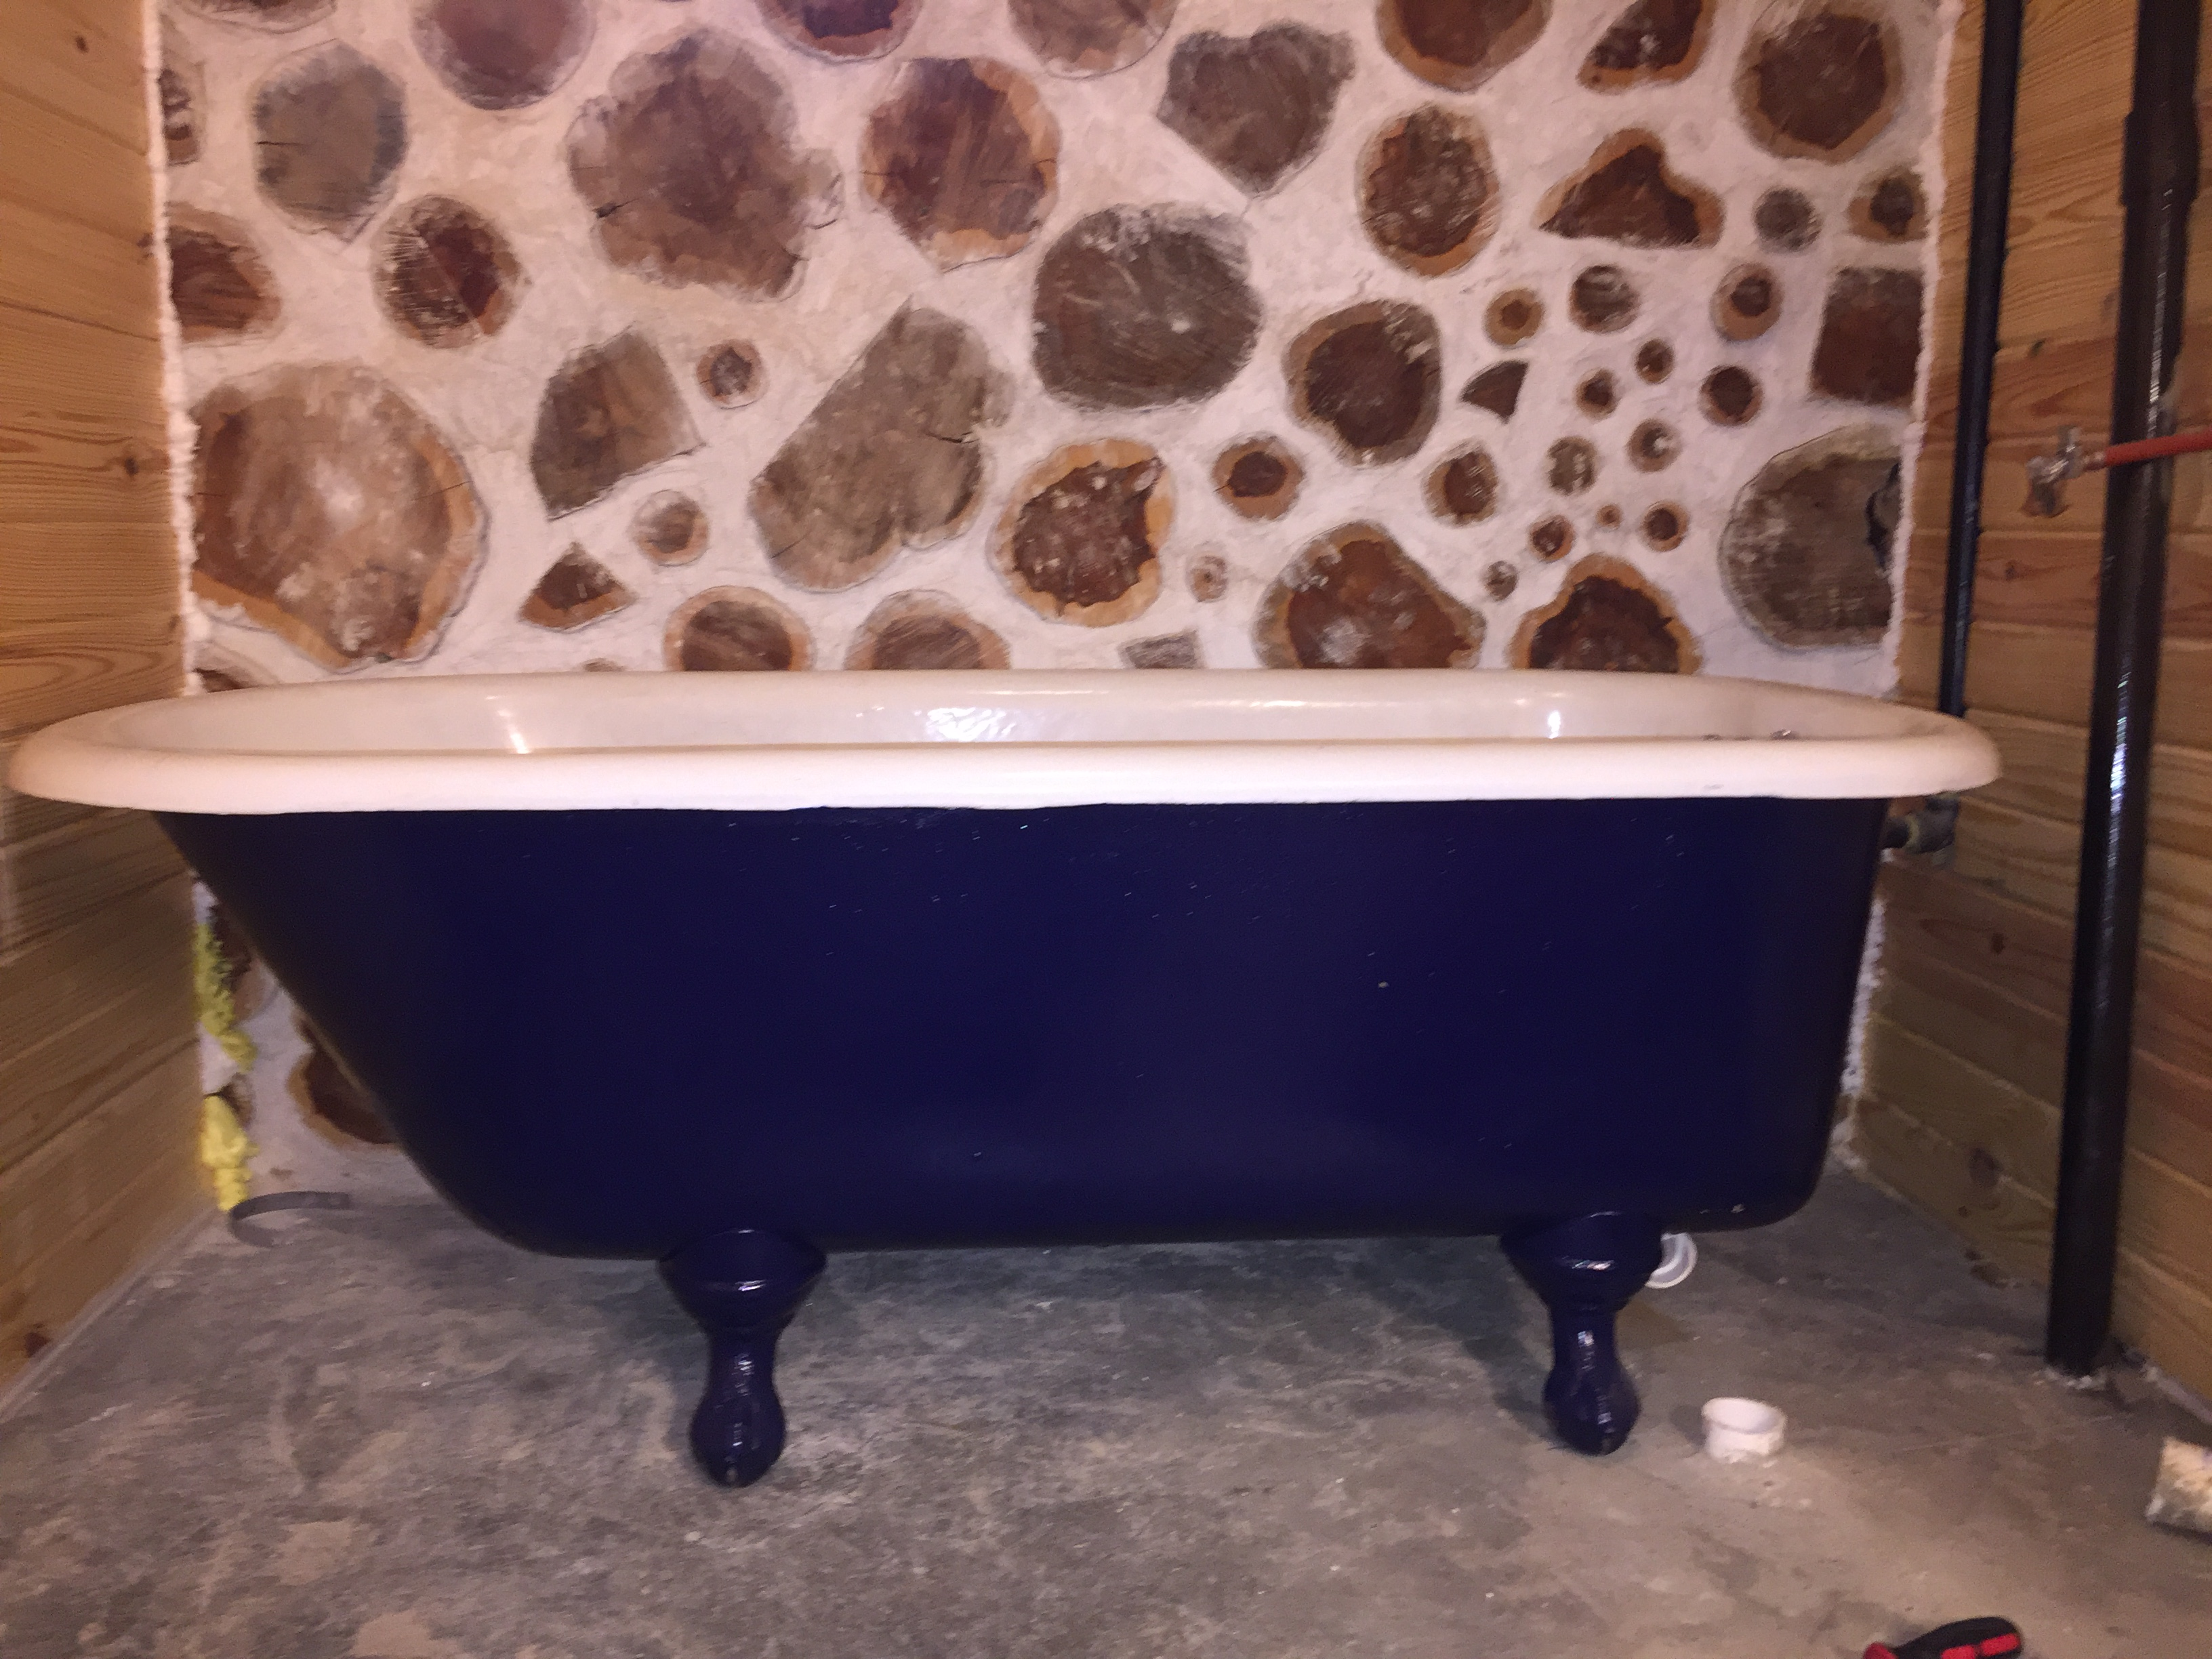 We took this old clawfoot tub and redid it ourselves for less than...